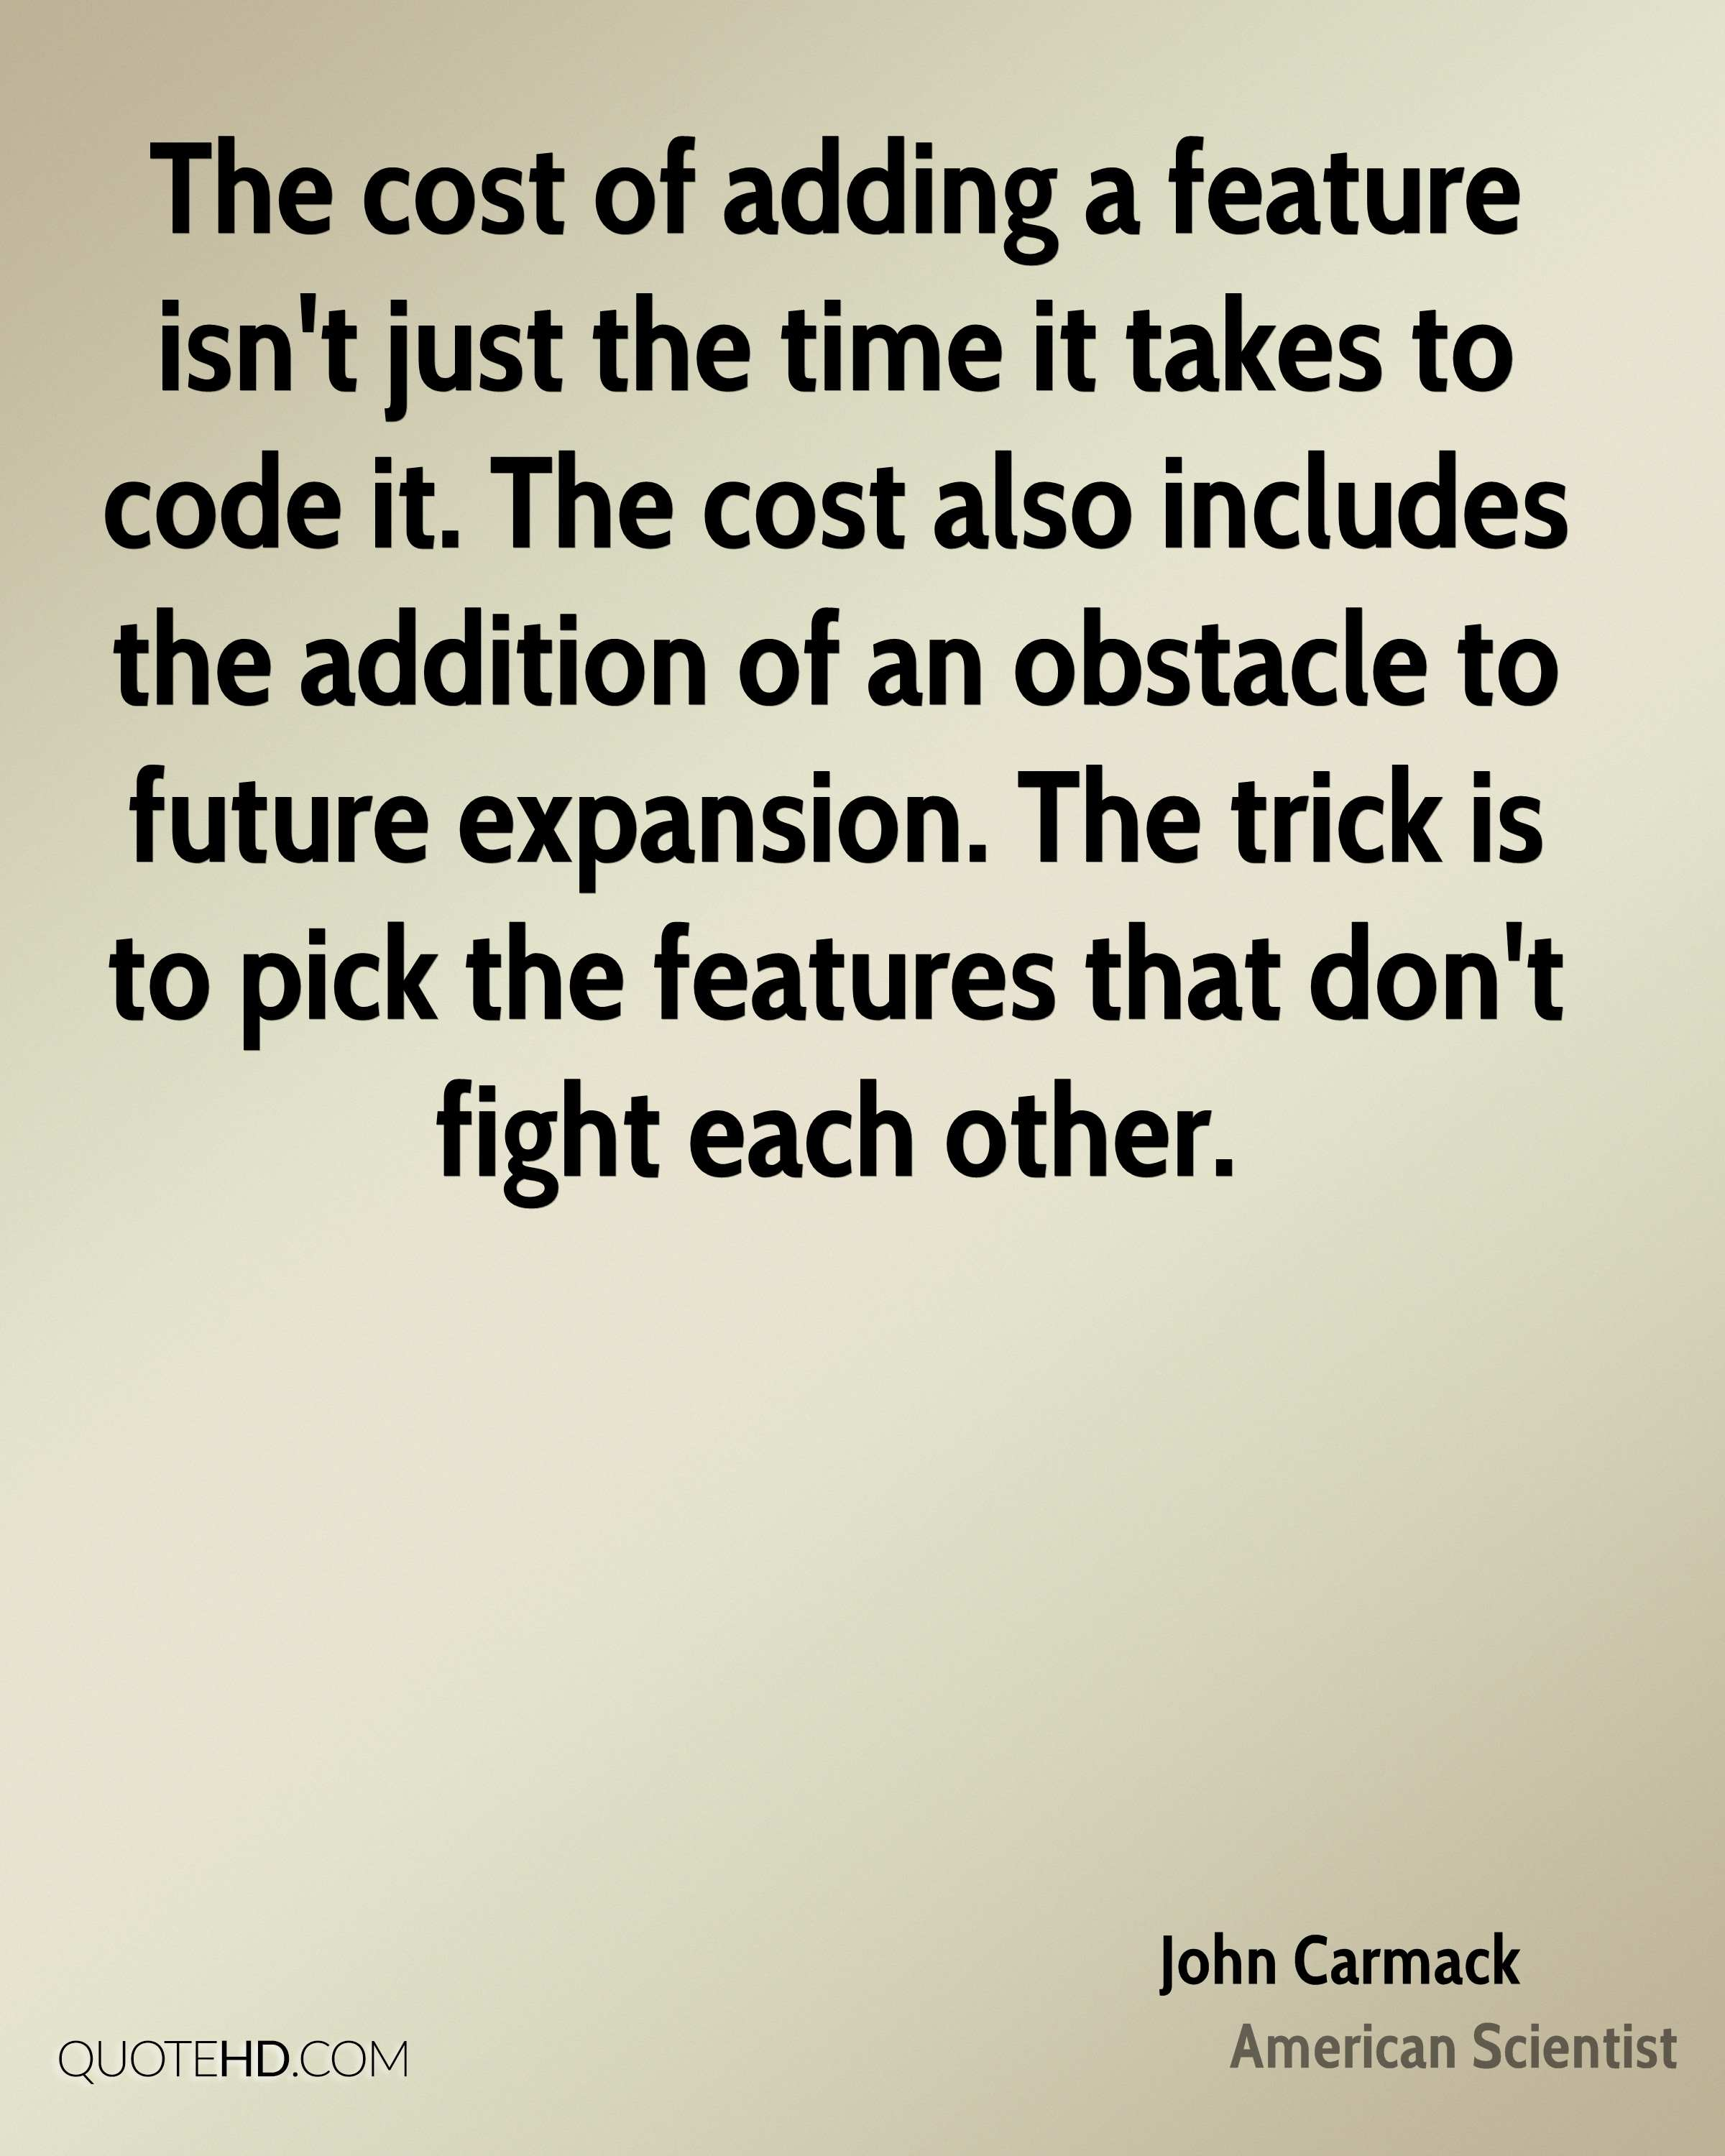 The cost of adding a feature isn't just the time it takes to code it. The cost also includes the addition of an obstacle to future expansion. The trick is to pick the features that don't fight each other.